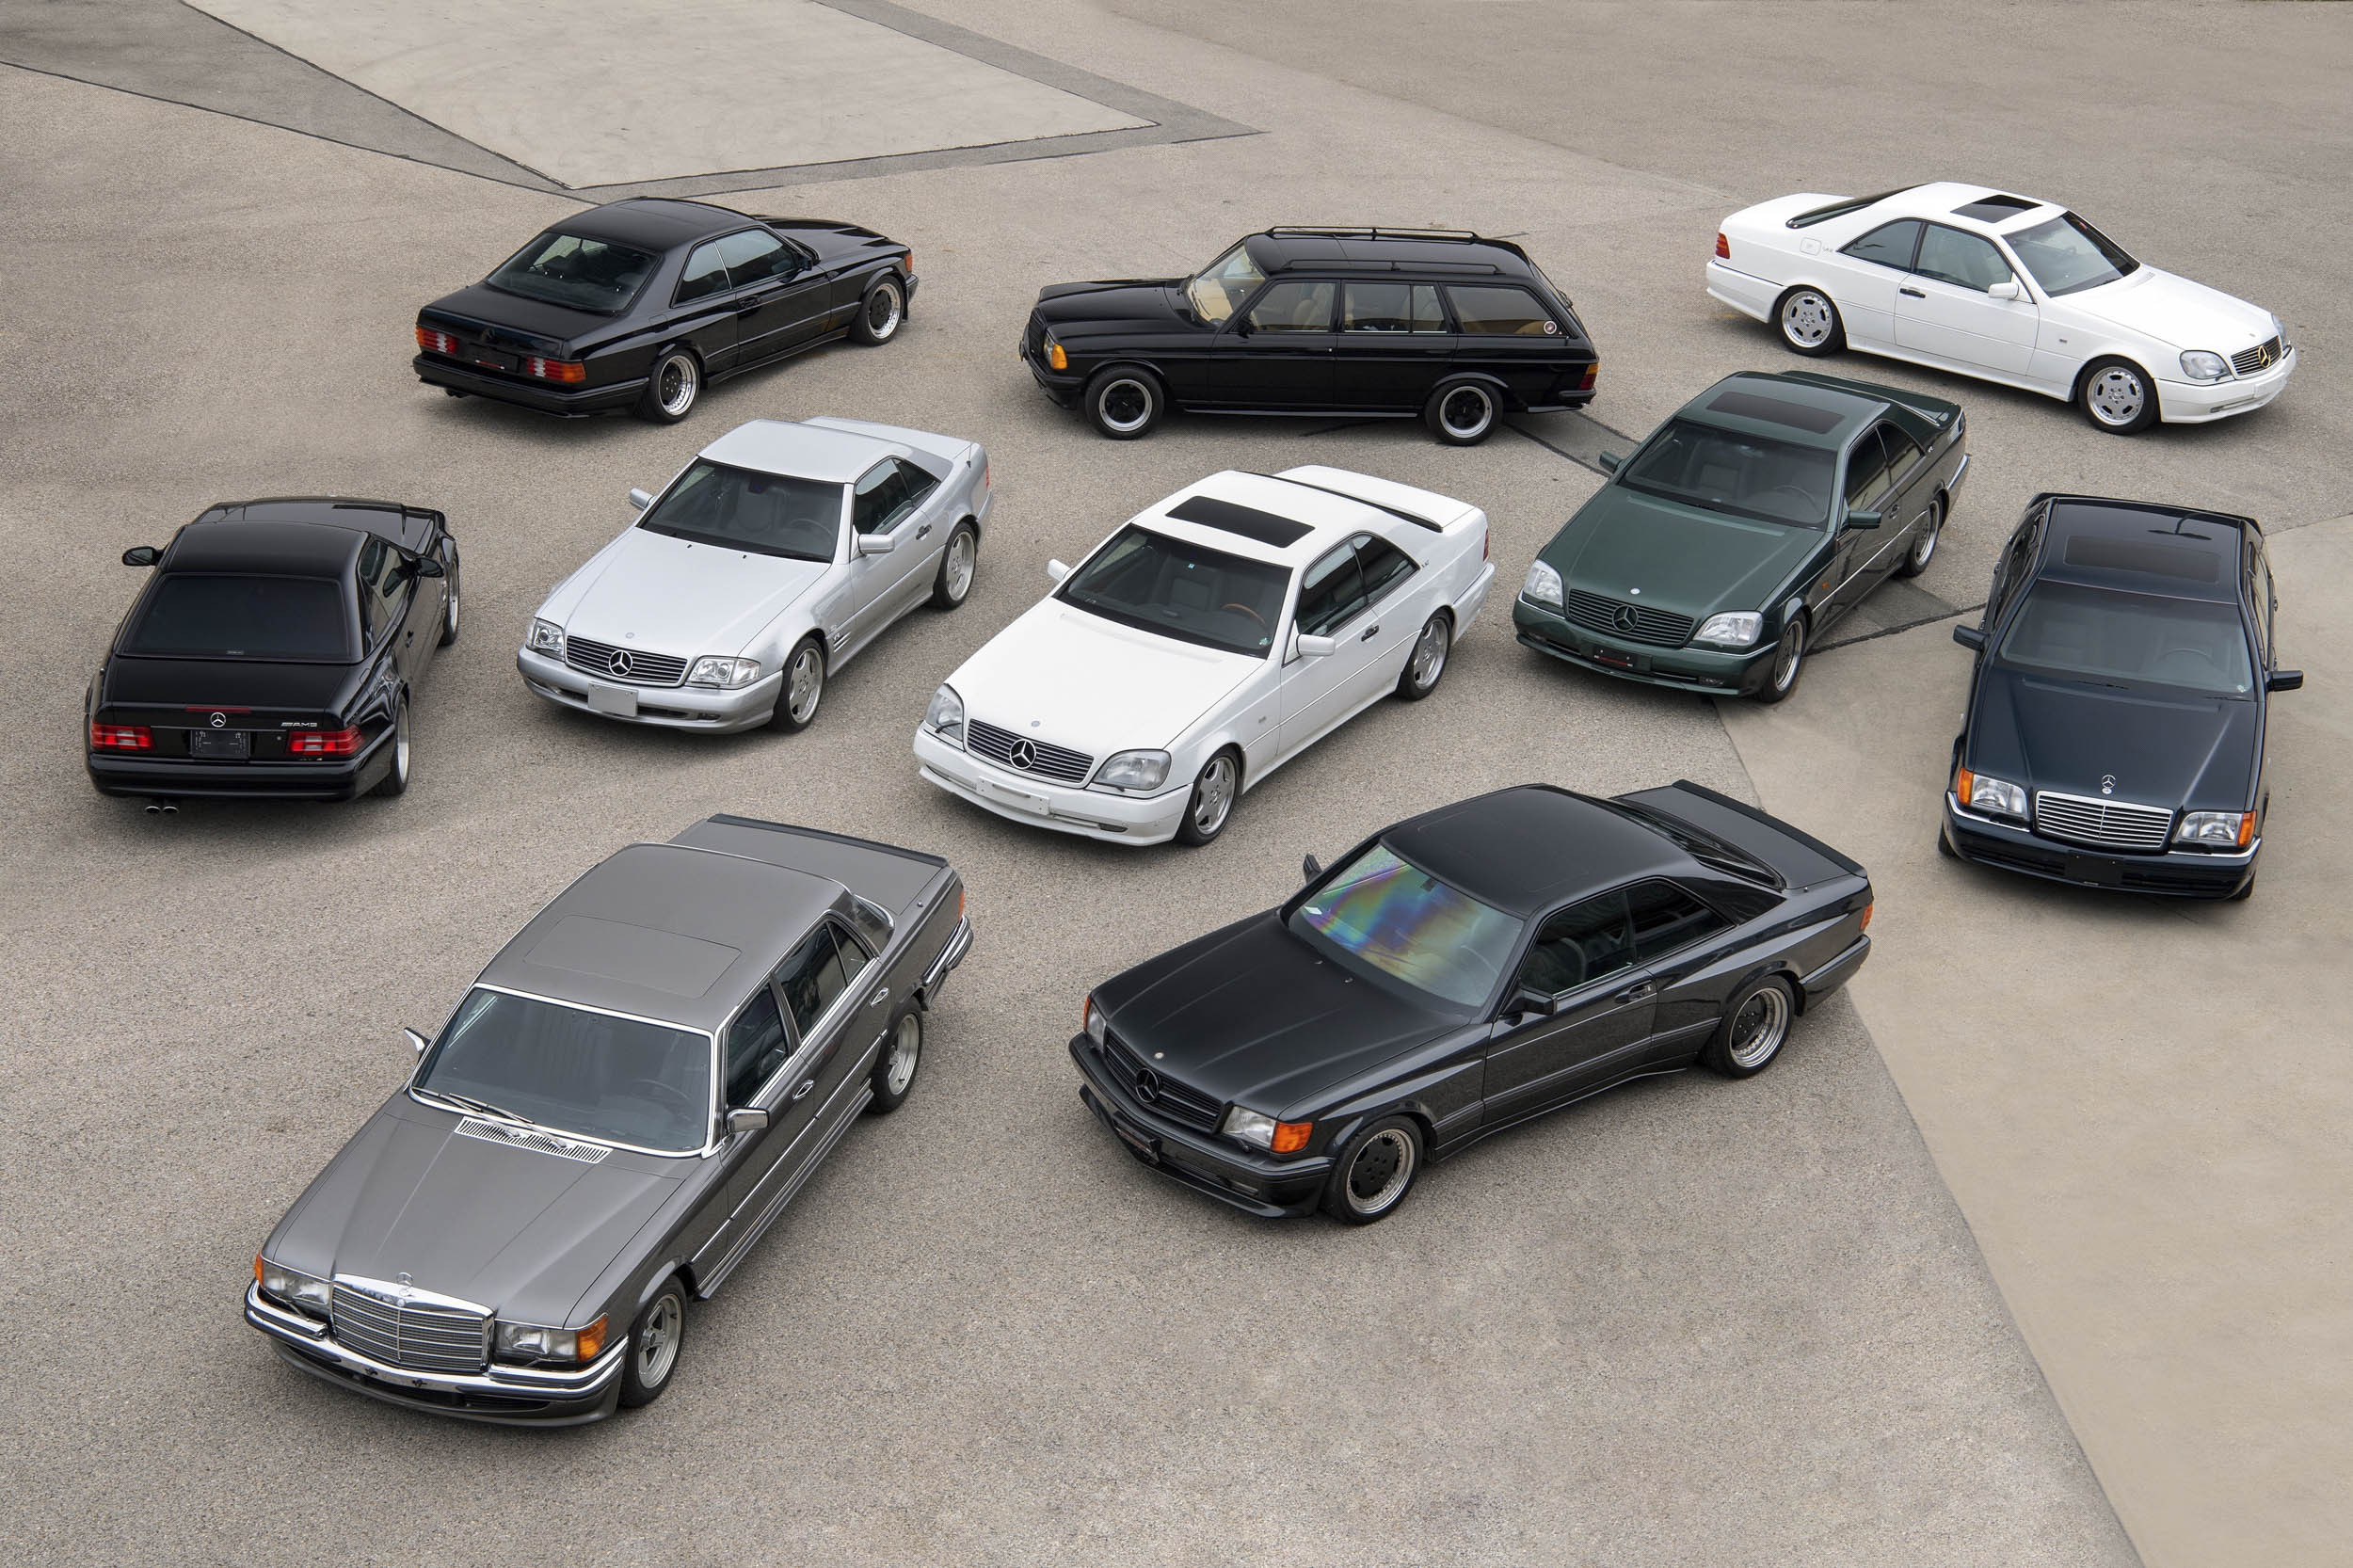 German collector cars head to auction